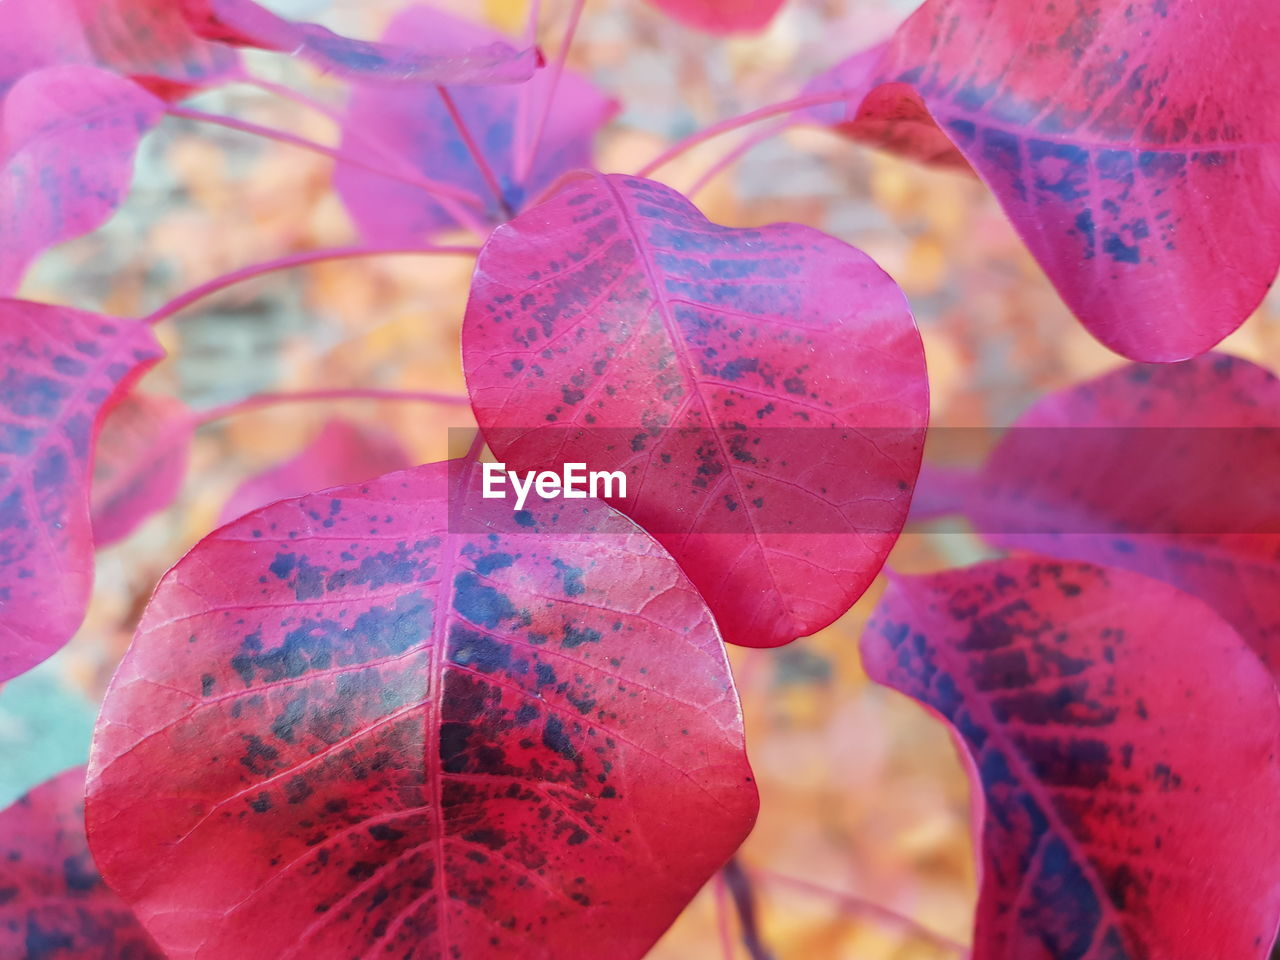 close-up, plant part, leaf, plant, growth, focus on foreground, beauty in nature, day, nature, pink color, no people, selective focus, freshness, autumn, outdoors, change, food, food and drink, vulnerability, red, leaves